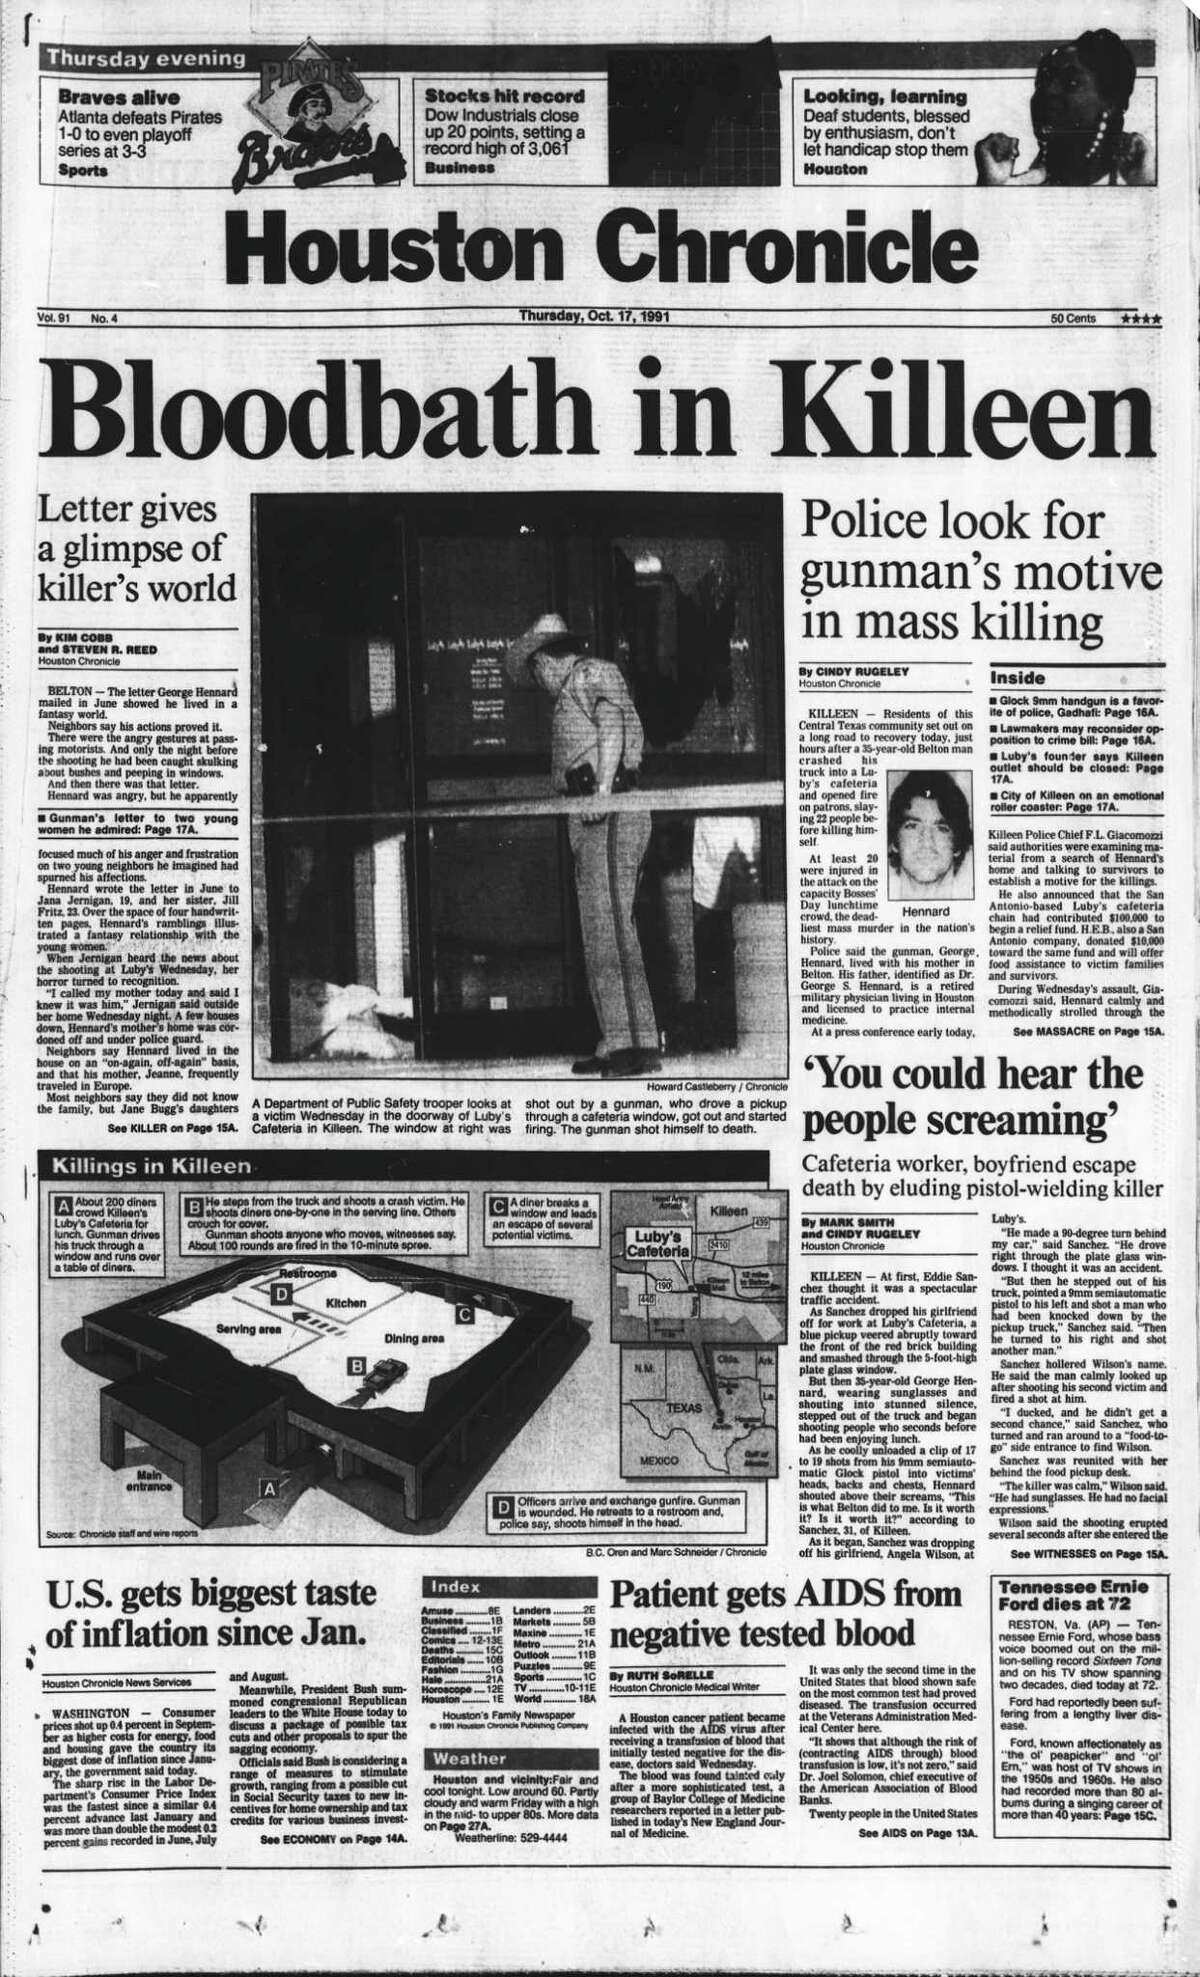 Location:Luby's in Killeen Date:October 16, 1991 # of deaths:24 Classification: In this photo:Houston Chronicle front page (HISTORIC) -- October 17, 1991 (Luby's cafeteria mass shooting) -- Bloodbath in Killeen. HOUCHRON CAPTION (08/12/2001): The Oct. 17, 1991, edition of the Chronicle was dominated by stories of a shooting rampage in Killeen that ended with 24 people dead. Stories of the killings, then the worst mass murder in U.S. history, focused on interviews with survivors as well as attempts to uncover the gunman's motive.